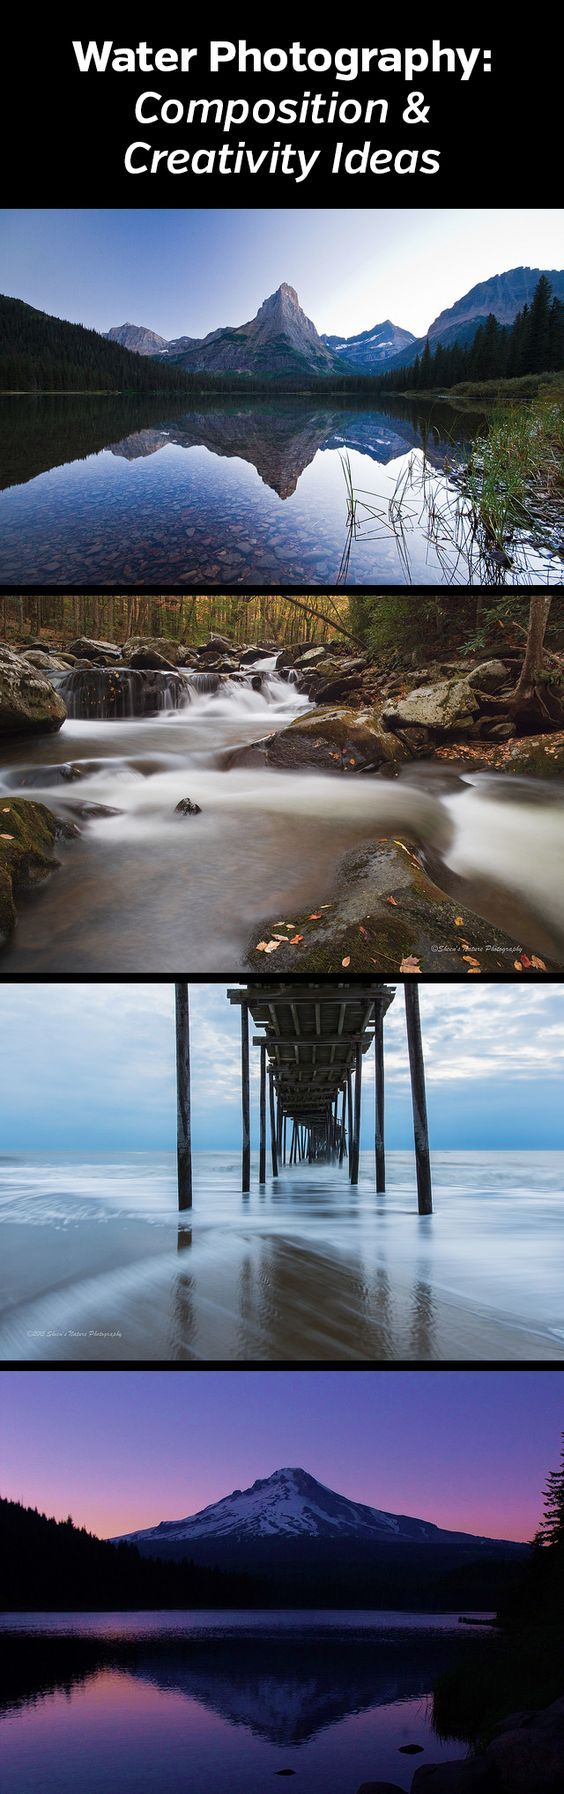 Water Photography: Composition & Creativity Ideas